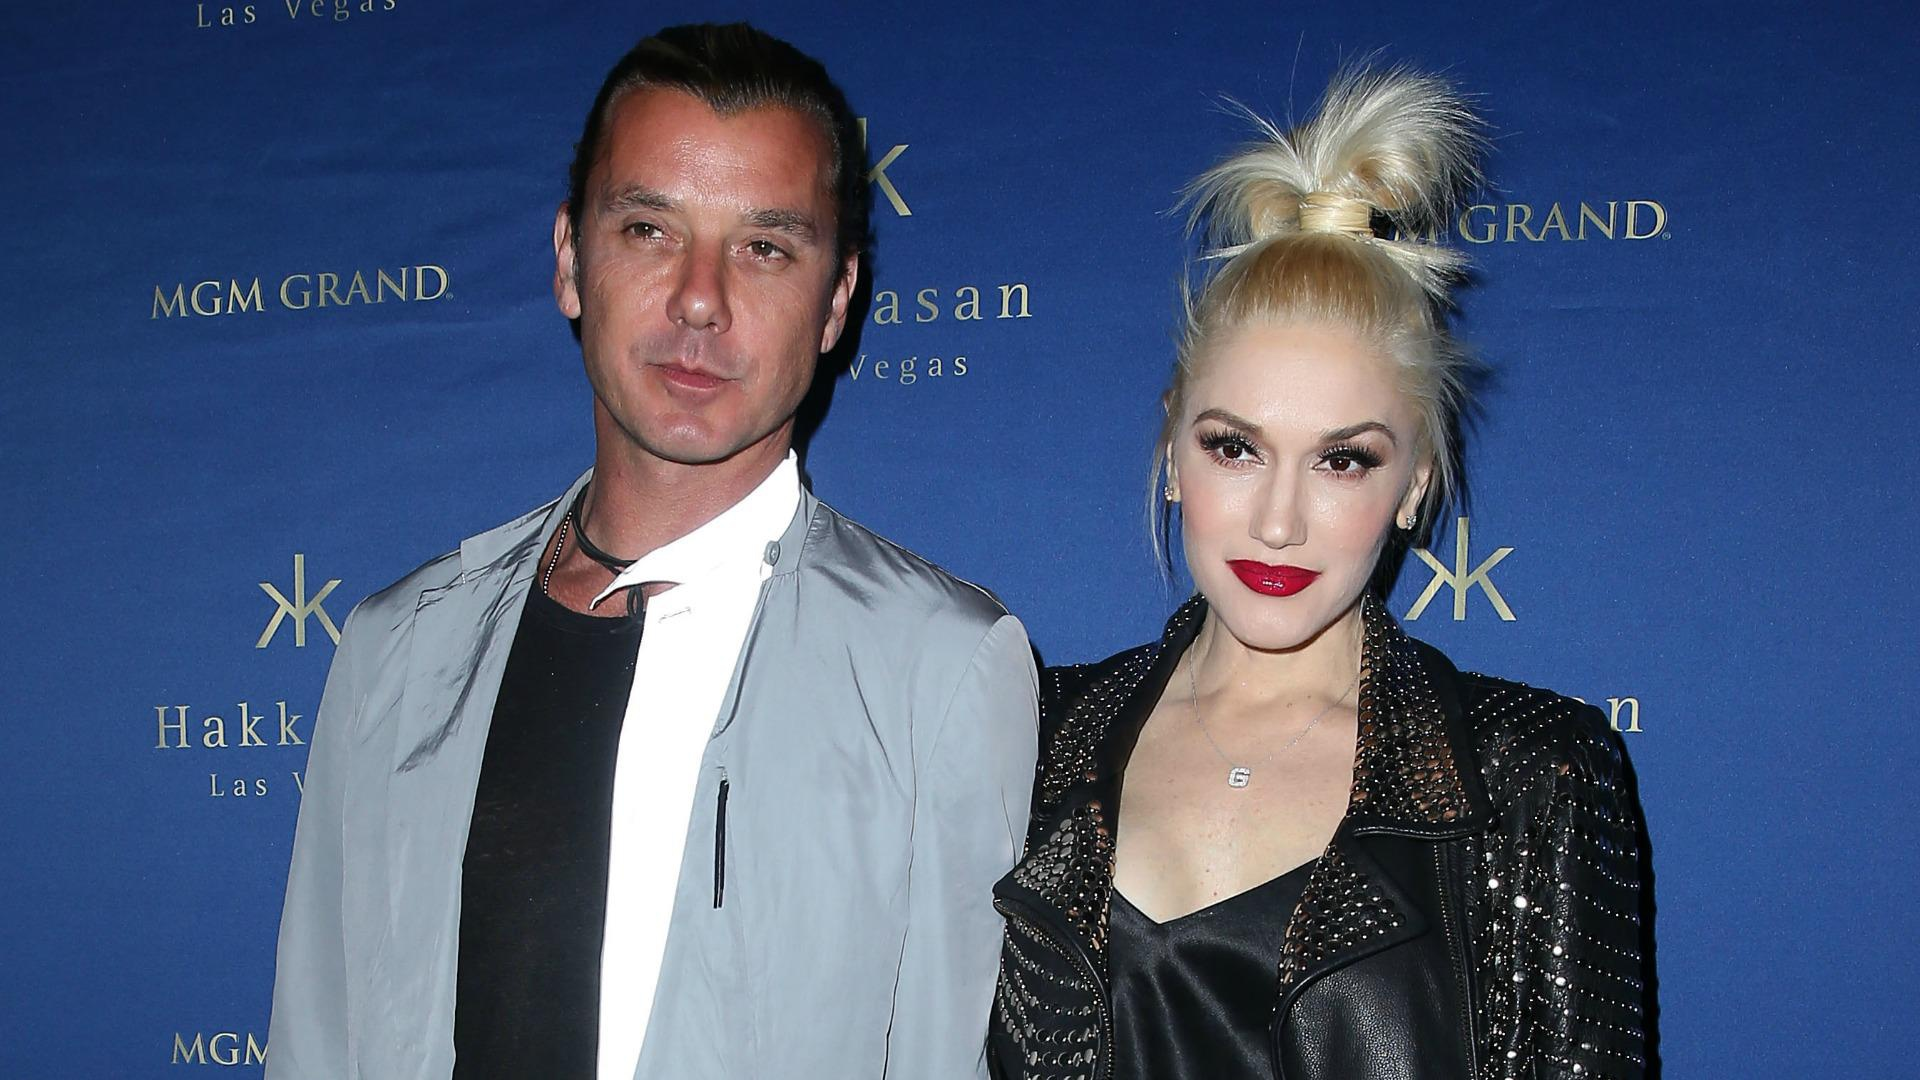 Gwen Stefani welcomes hubby Gavin Rossdale to <em>The Voice</em>